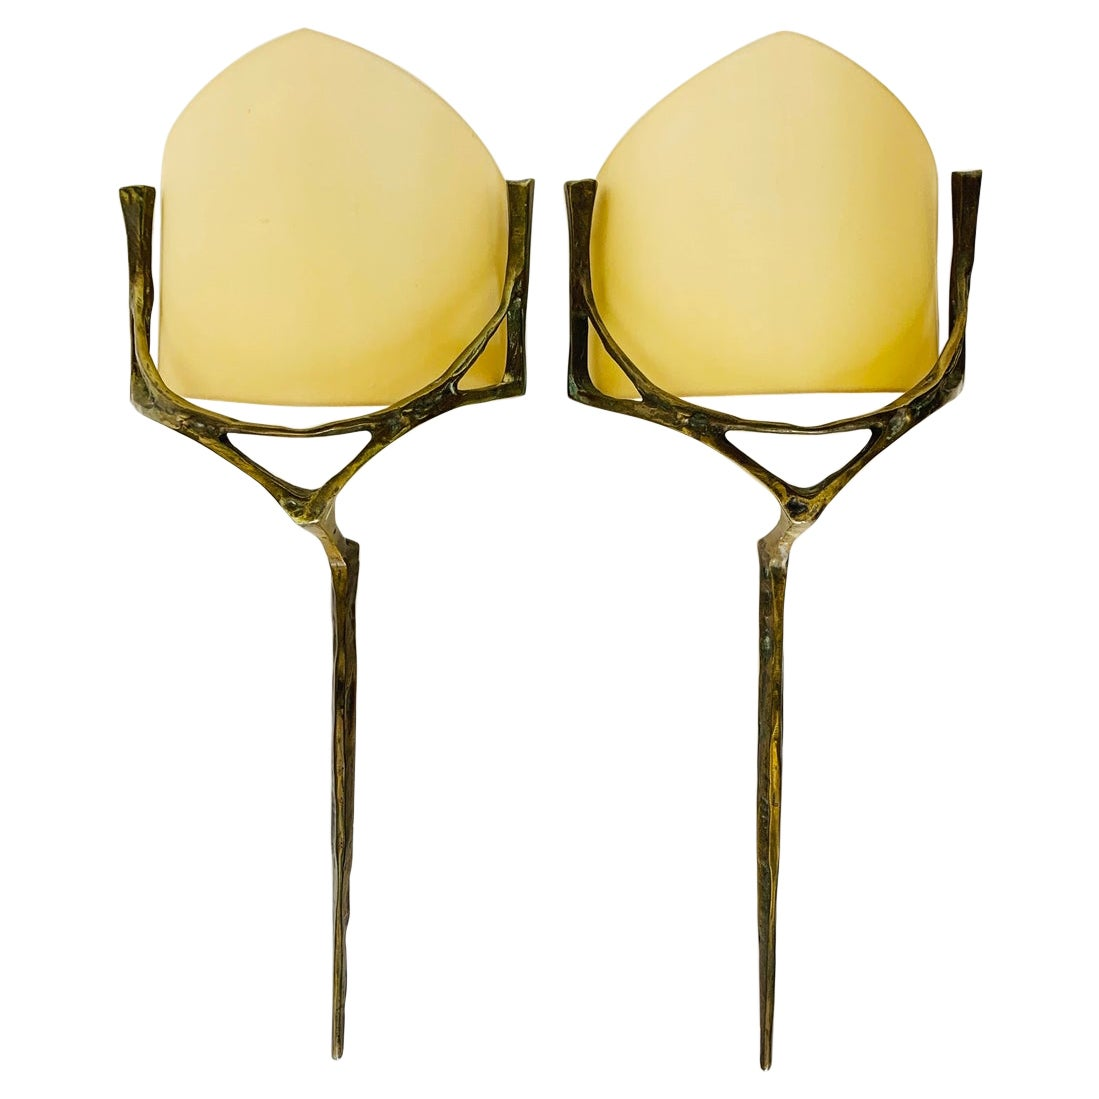 Pair of Wall Sconces in Bronze, & Brass w/ Linen Shades